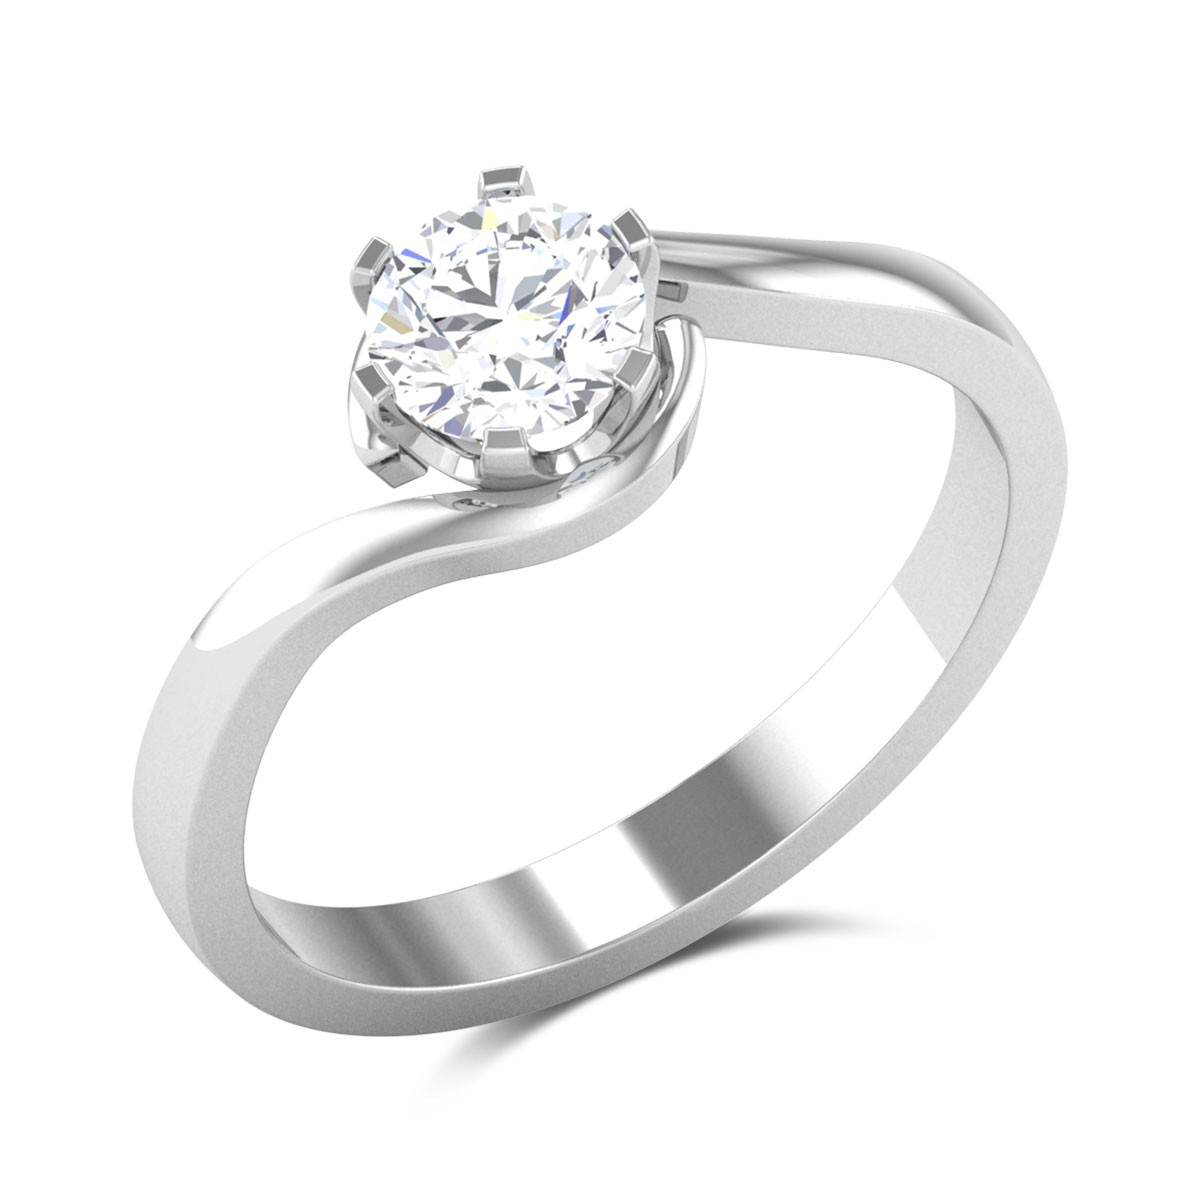 Erin 6 Prong Twist Solitaire Ring